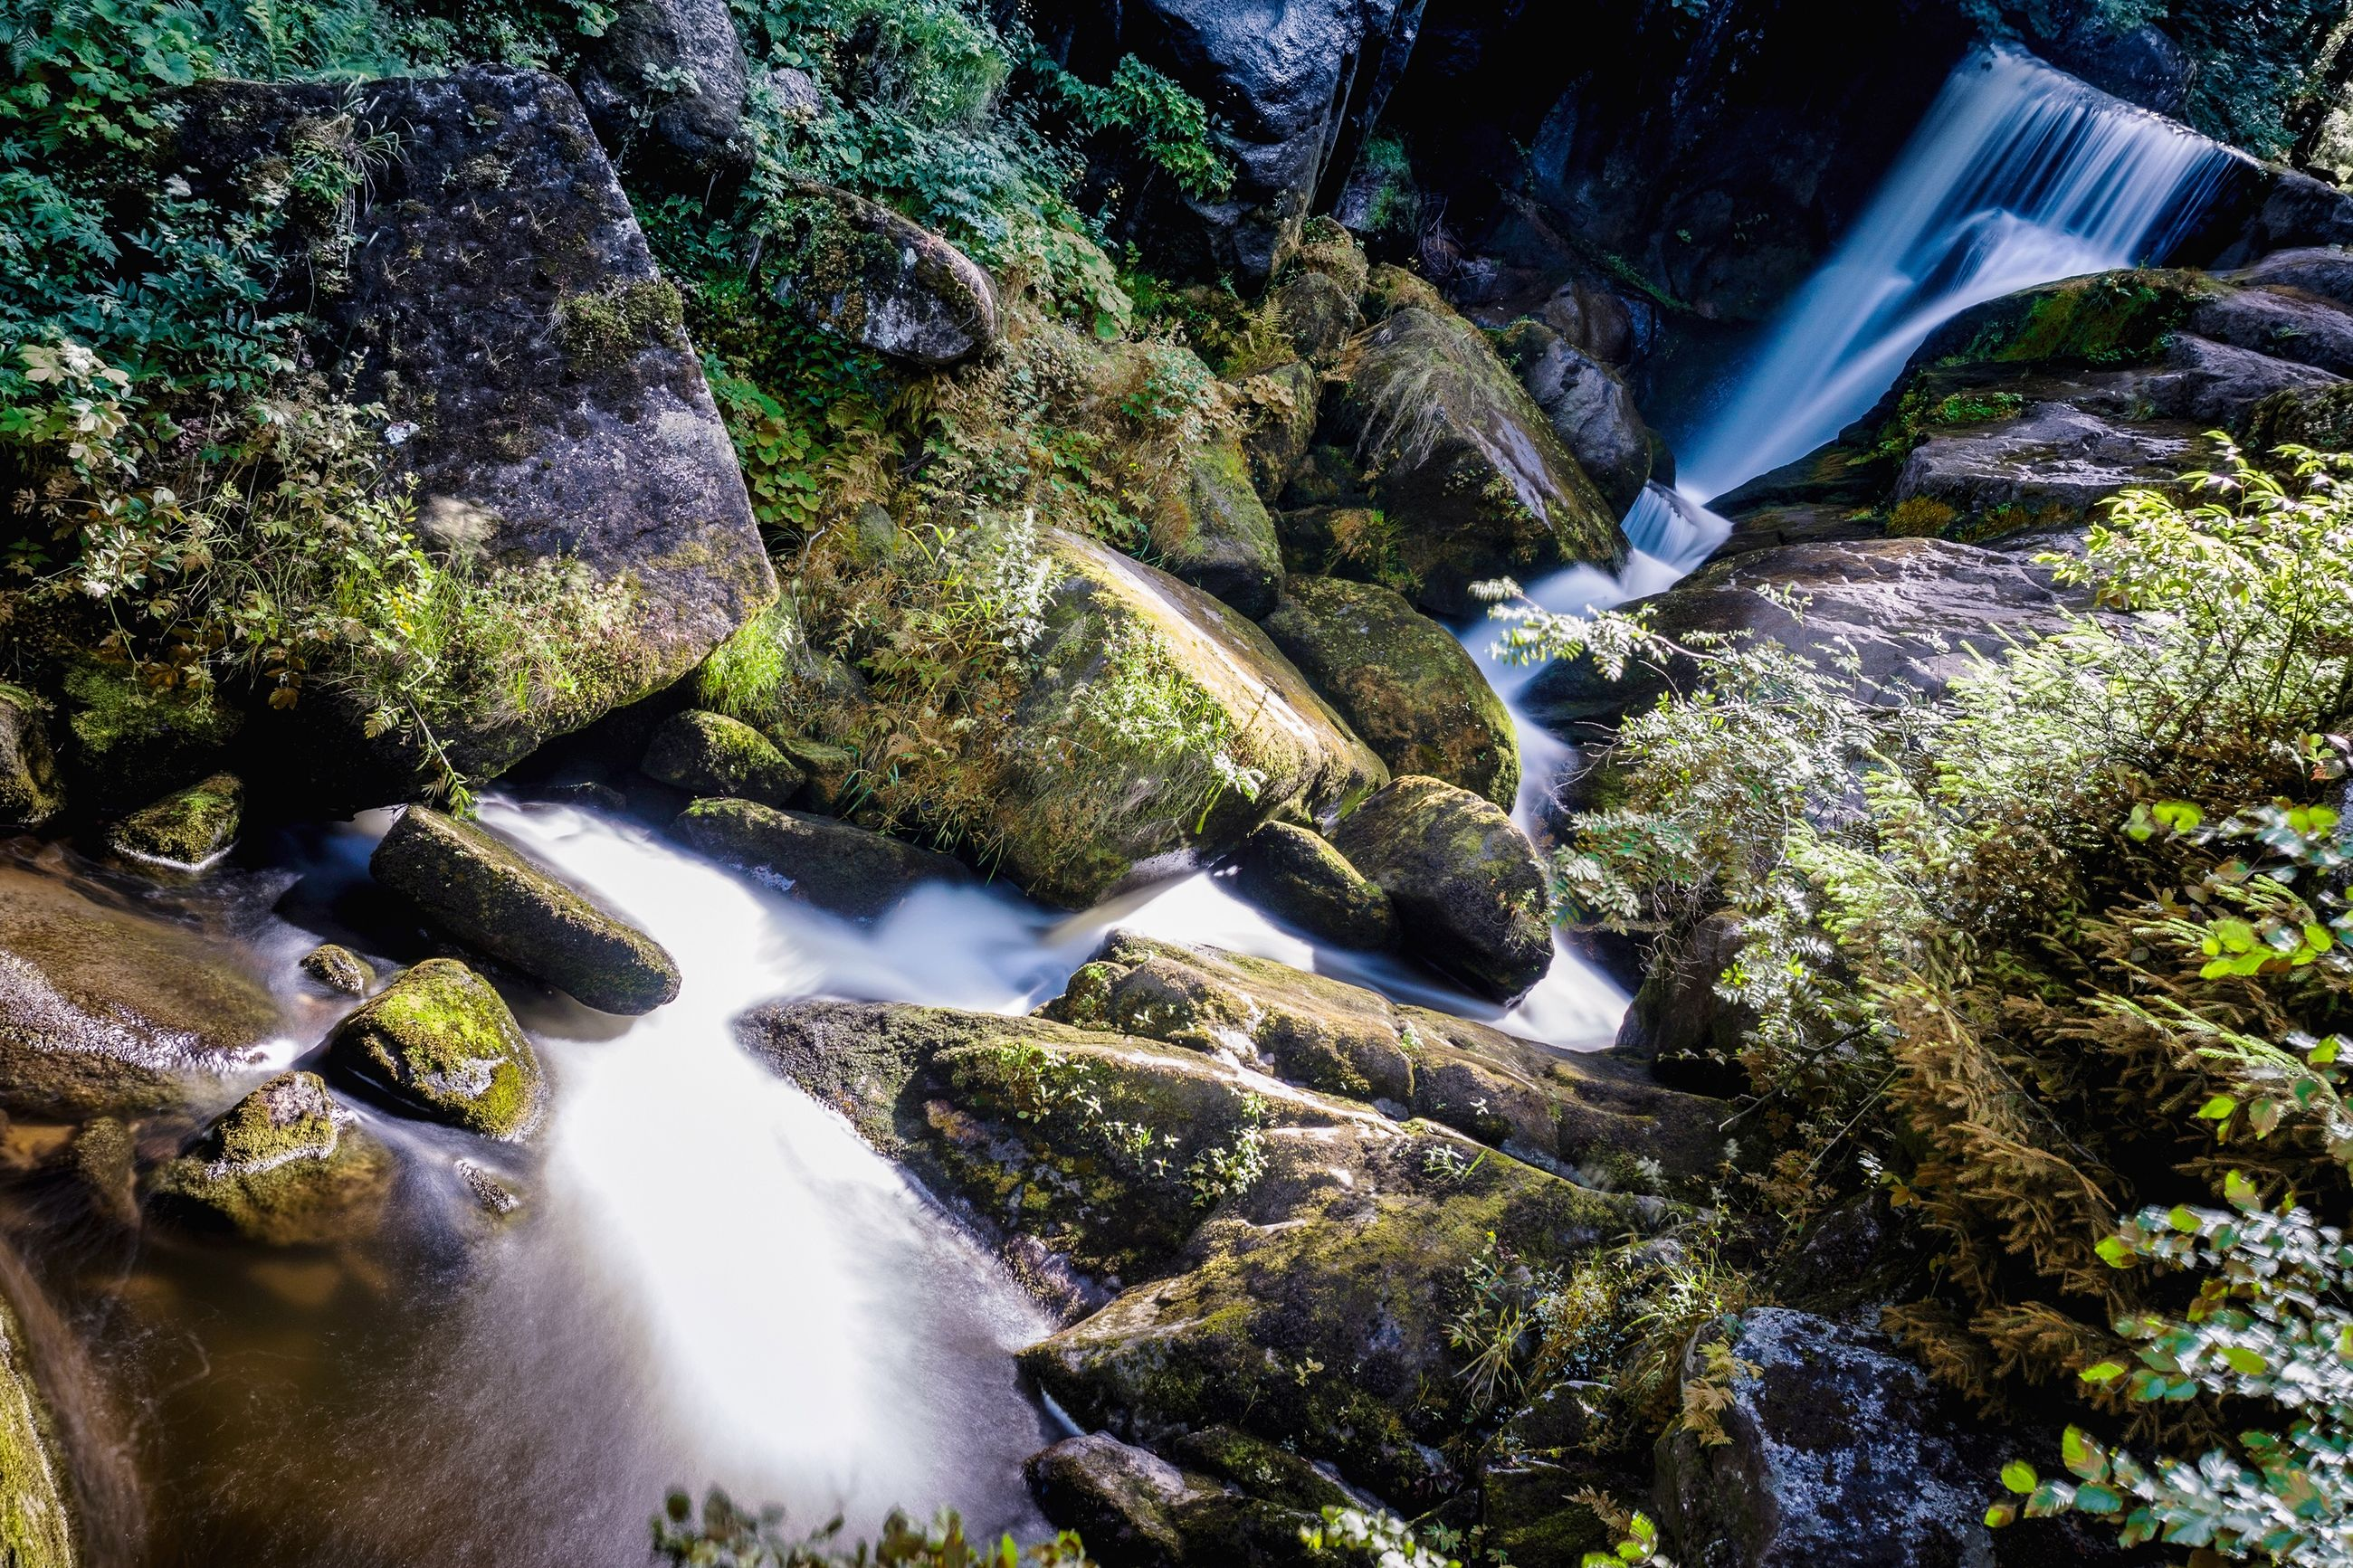 water, rock, scenics - nature, waterfall, flowing water, solid, rock - object, motion, long exposure, moss, blurred motion, beauty in nature, forest, nature, flowing, no people, day, river, tree, stream - flowing water, outdoors, falling water, purity, power in nature, running water